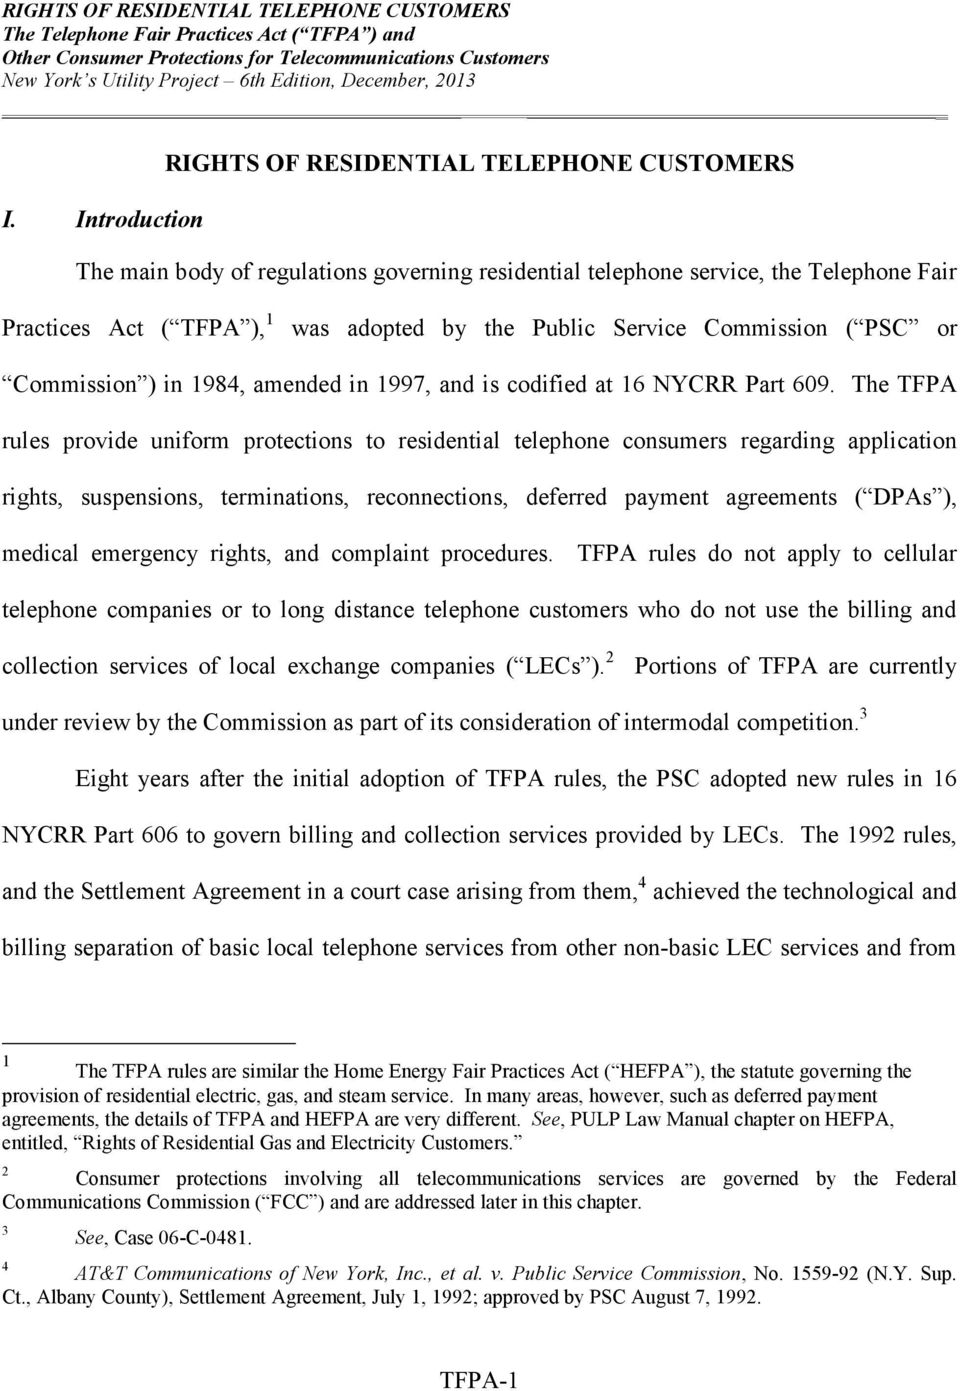 The TFPA rules provide uniform protections to residential telephone consumers regarding application rights, suspensions, terminations, reconnections, deferred payment agreements ( DPAs ), medical